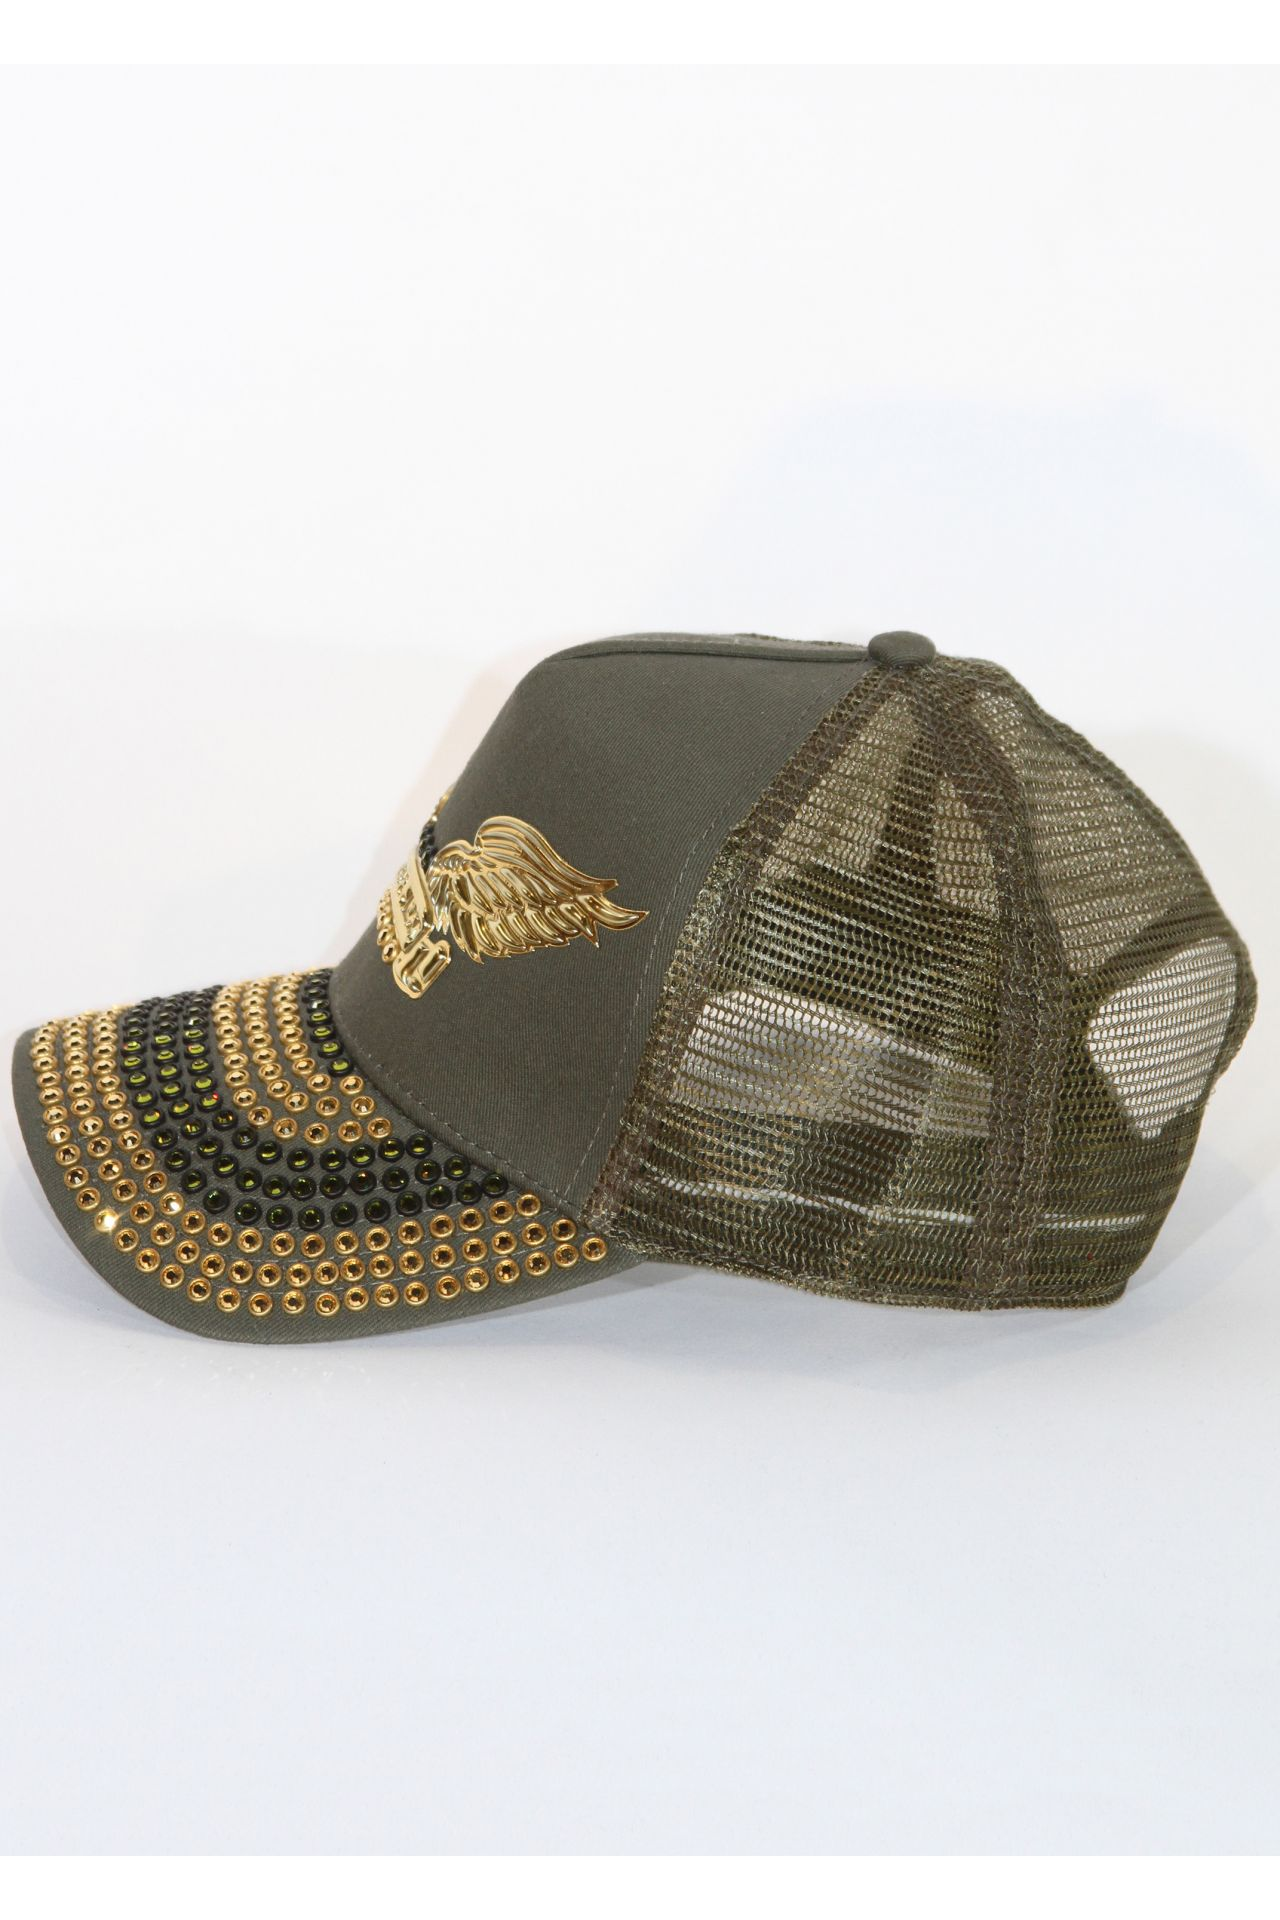 TRUCKER CAP IN OLIVE WITH AURUM AND OLIVE SW